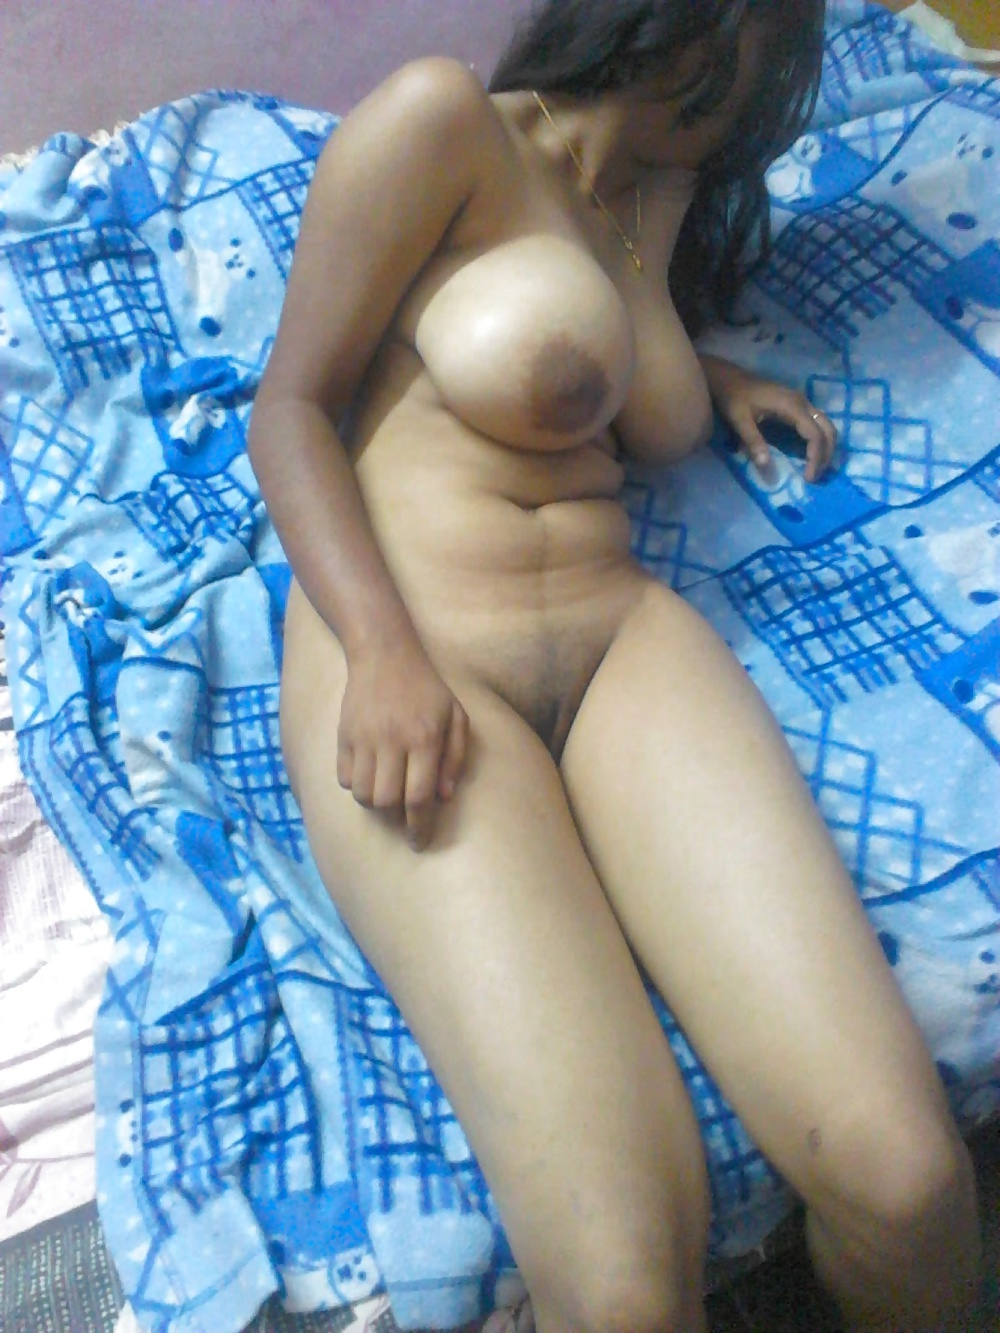 That Desi nude young wet girls photo remarkable, valuable